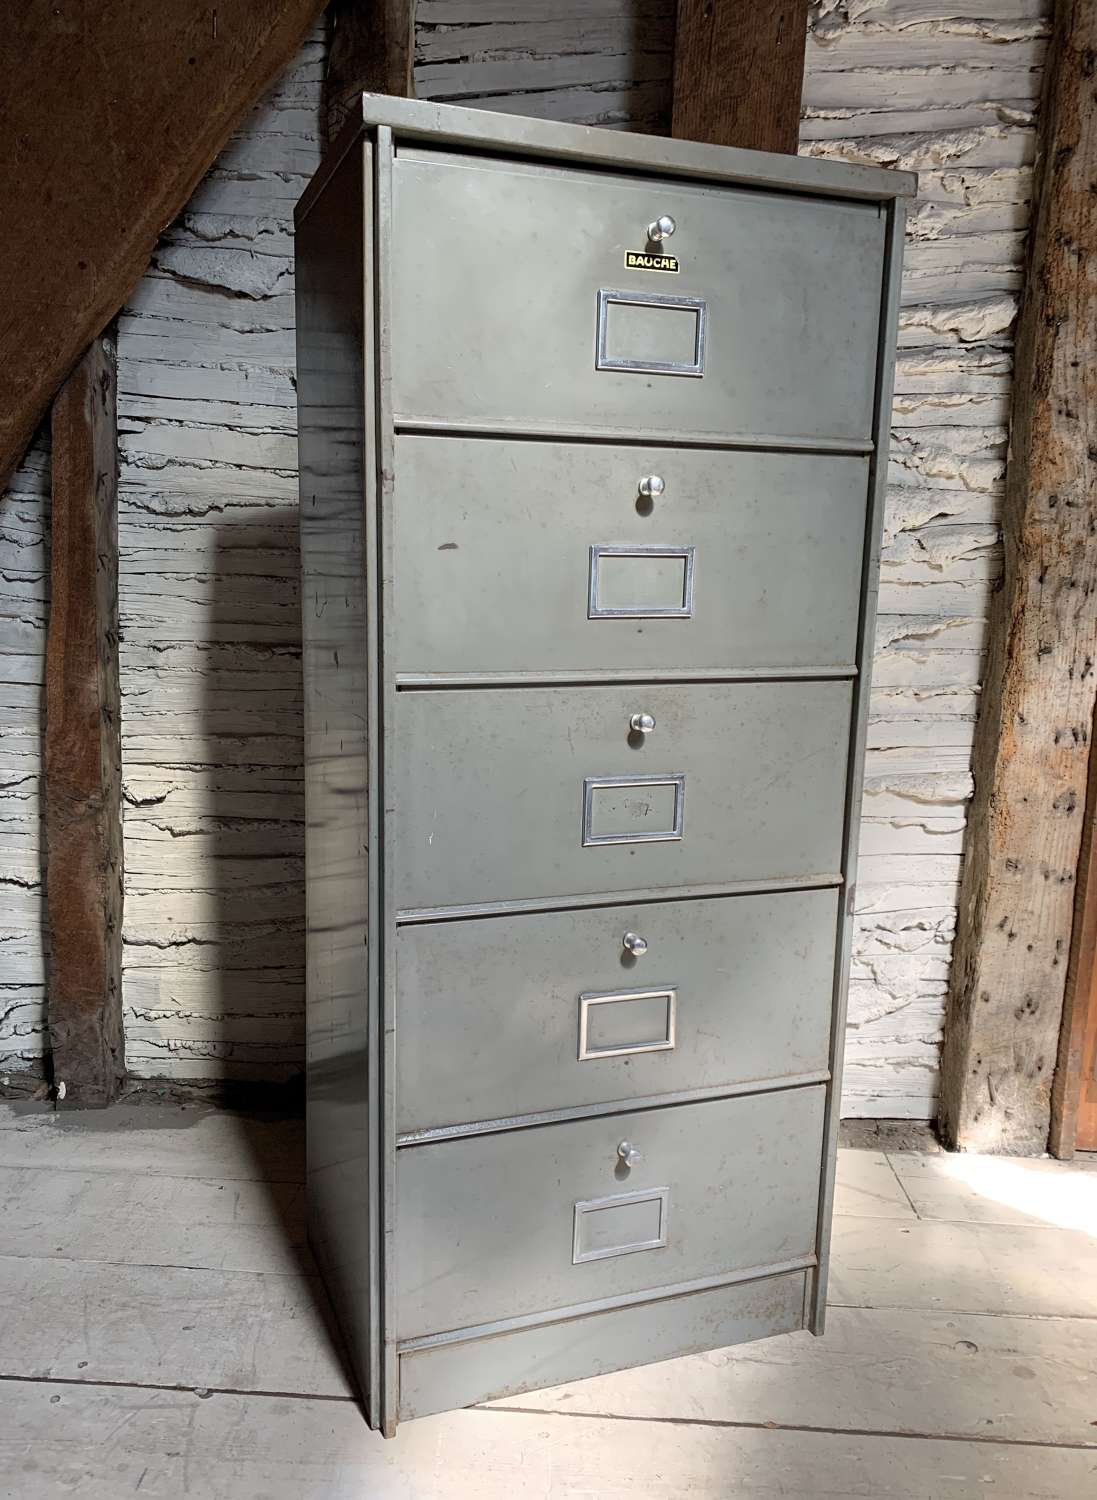 Vintage French Notaire's Metal Cabinet / Locker